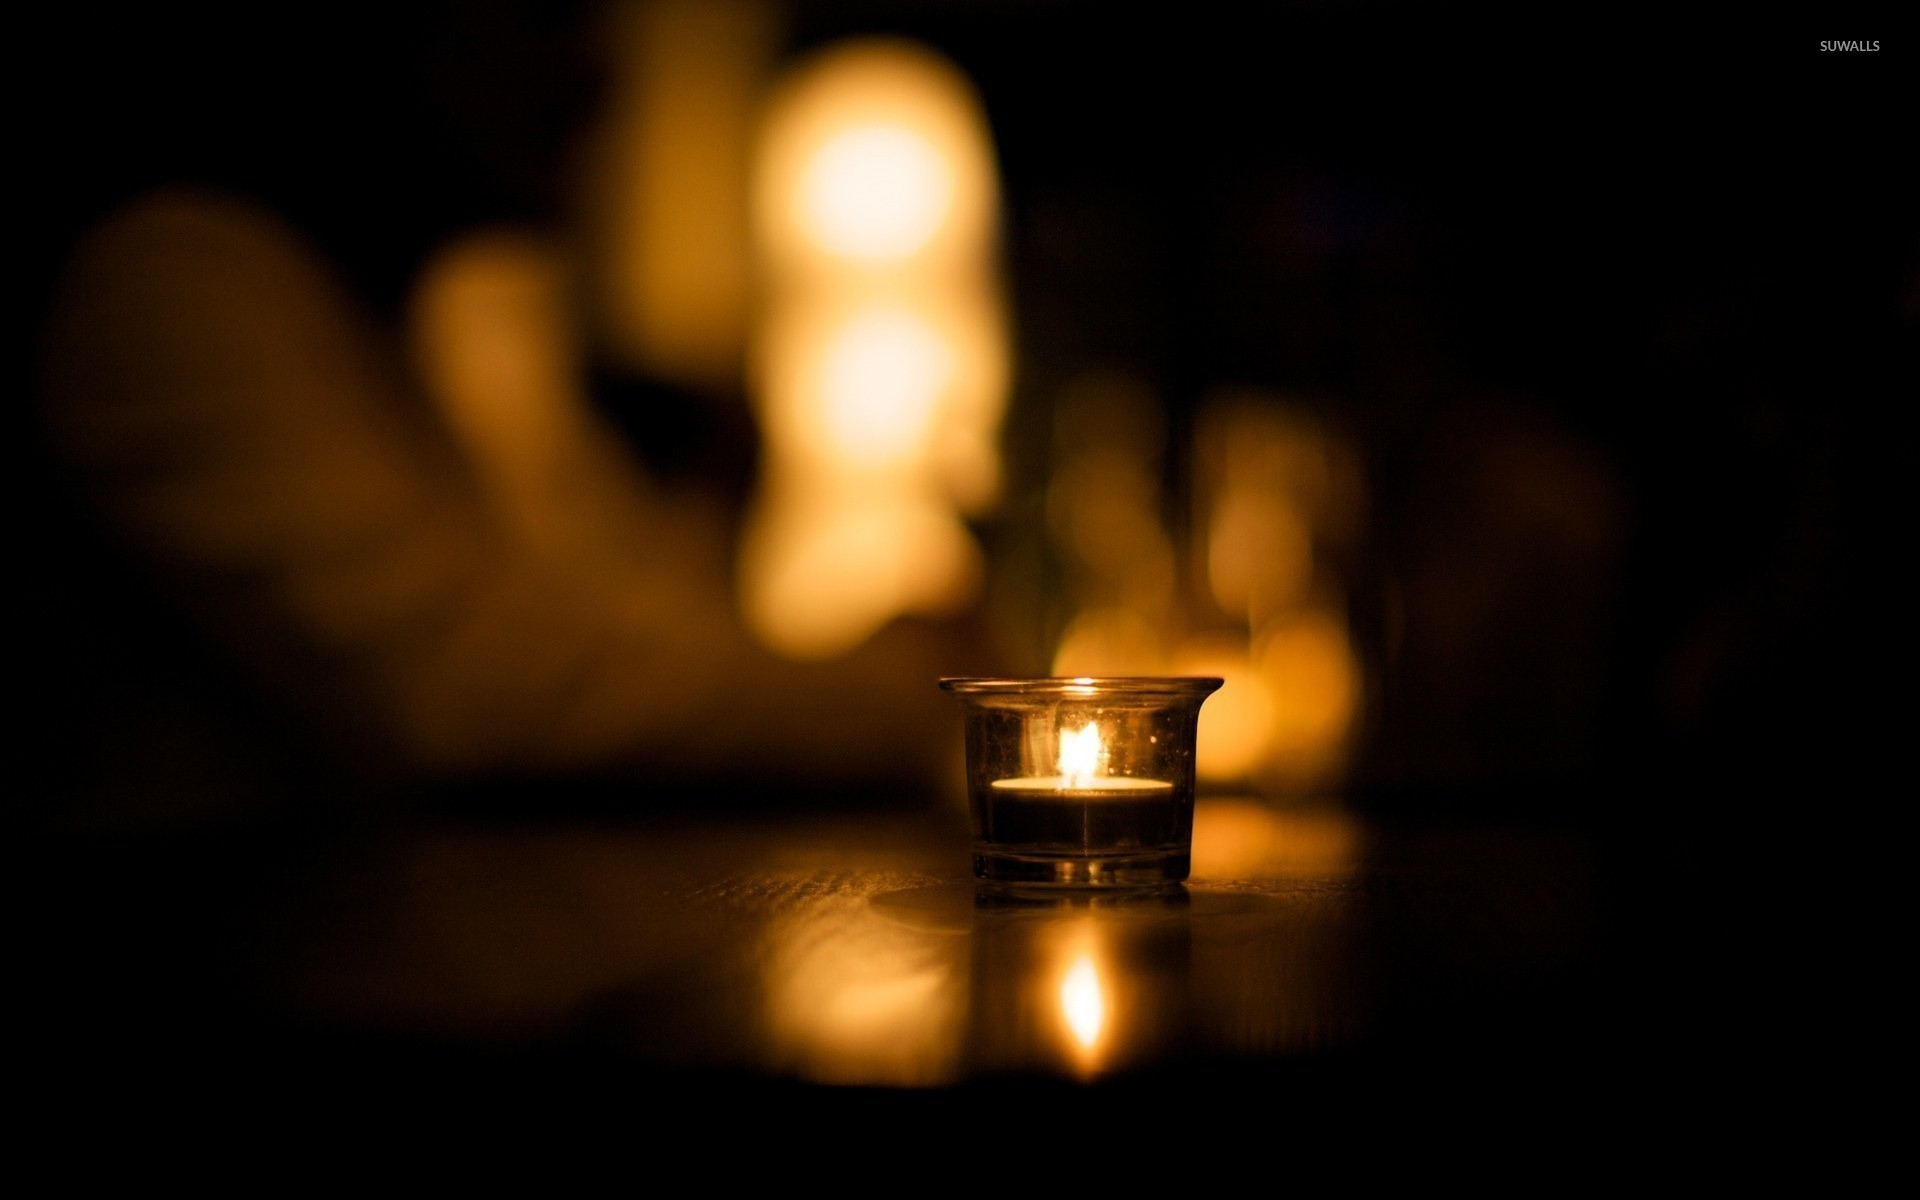 candle in the dark - photo #42